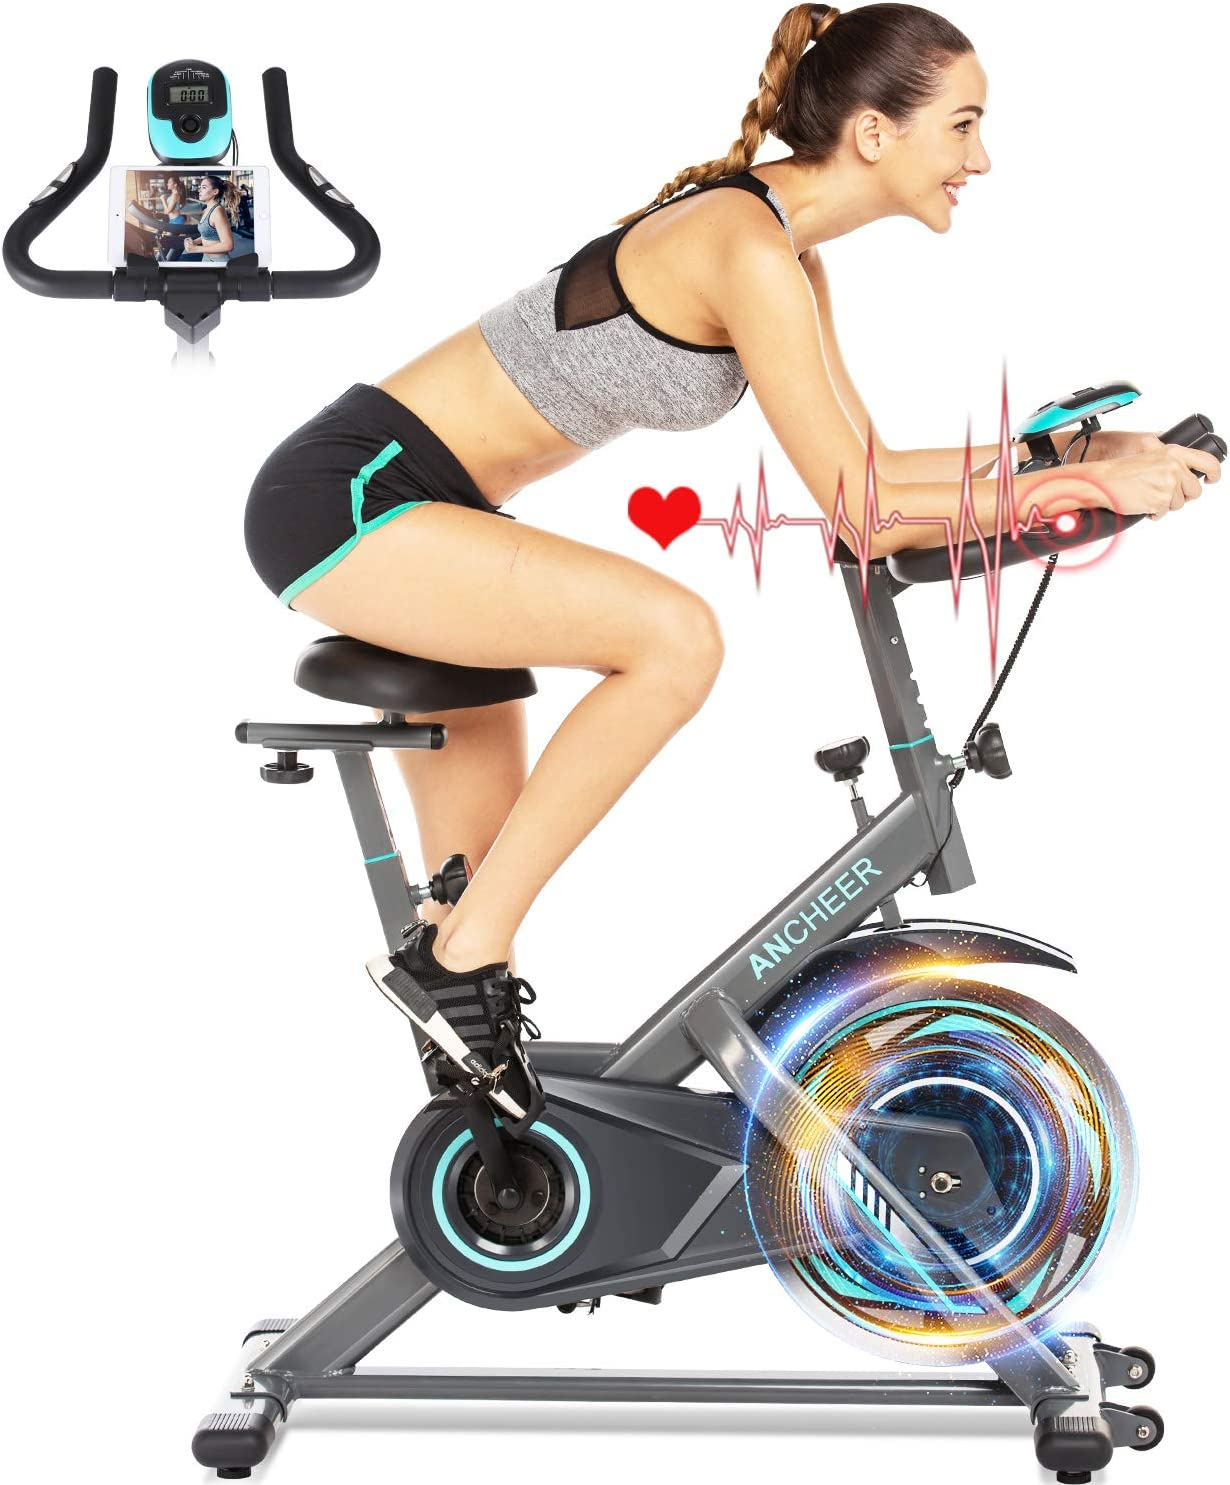 ANCHEER Exercise Bike, Indoor Cycling Bike Stationary with Heart